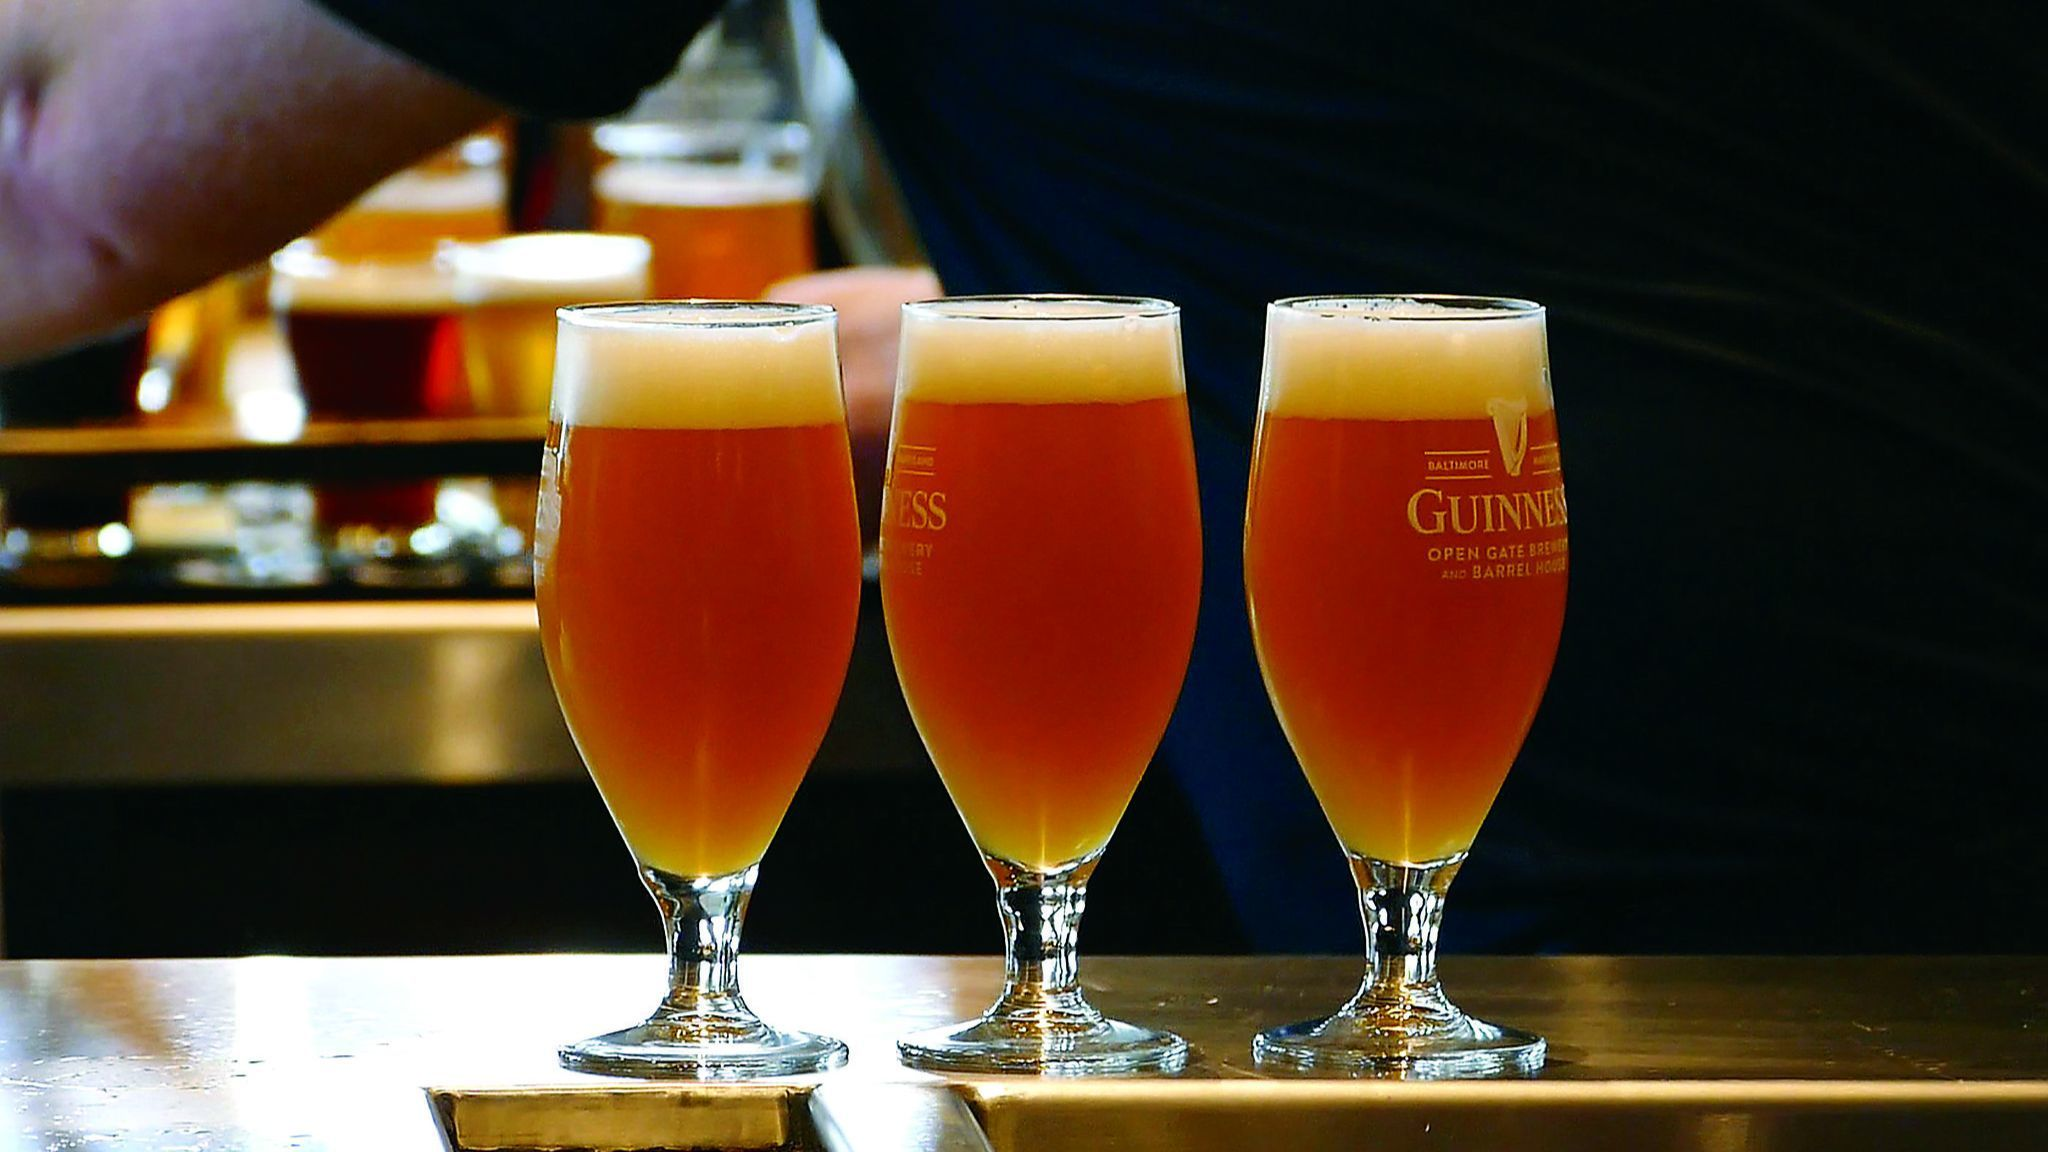 Guinness Open Gate Brewery opens to the public